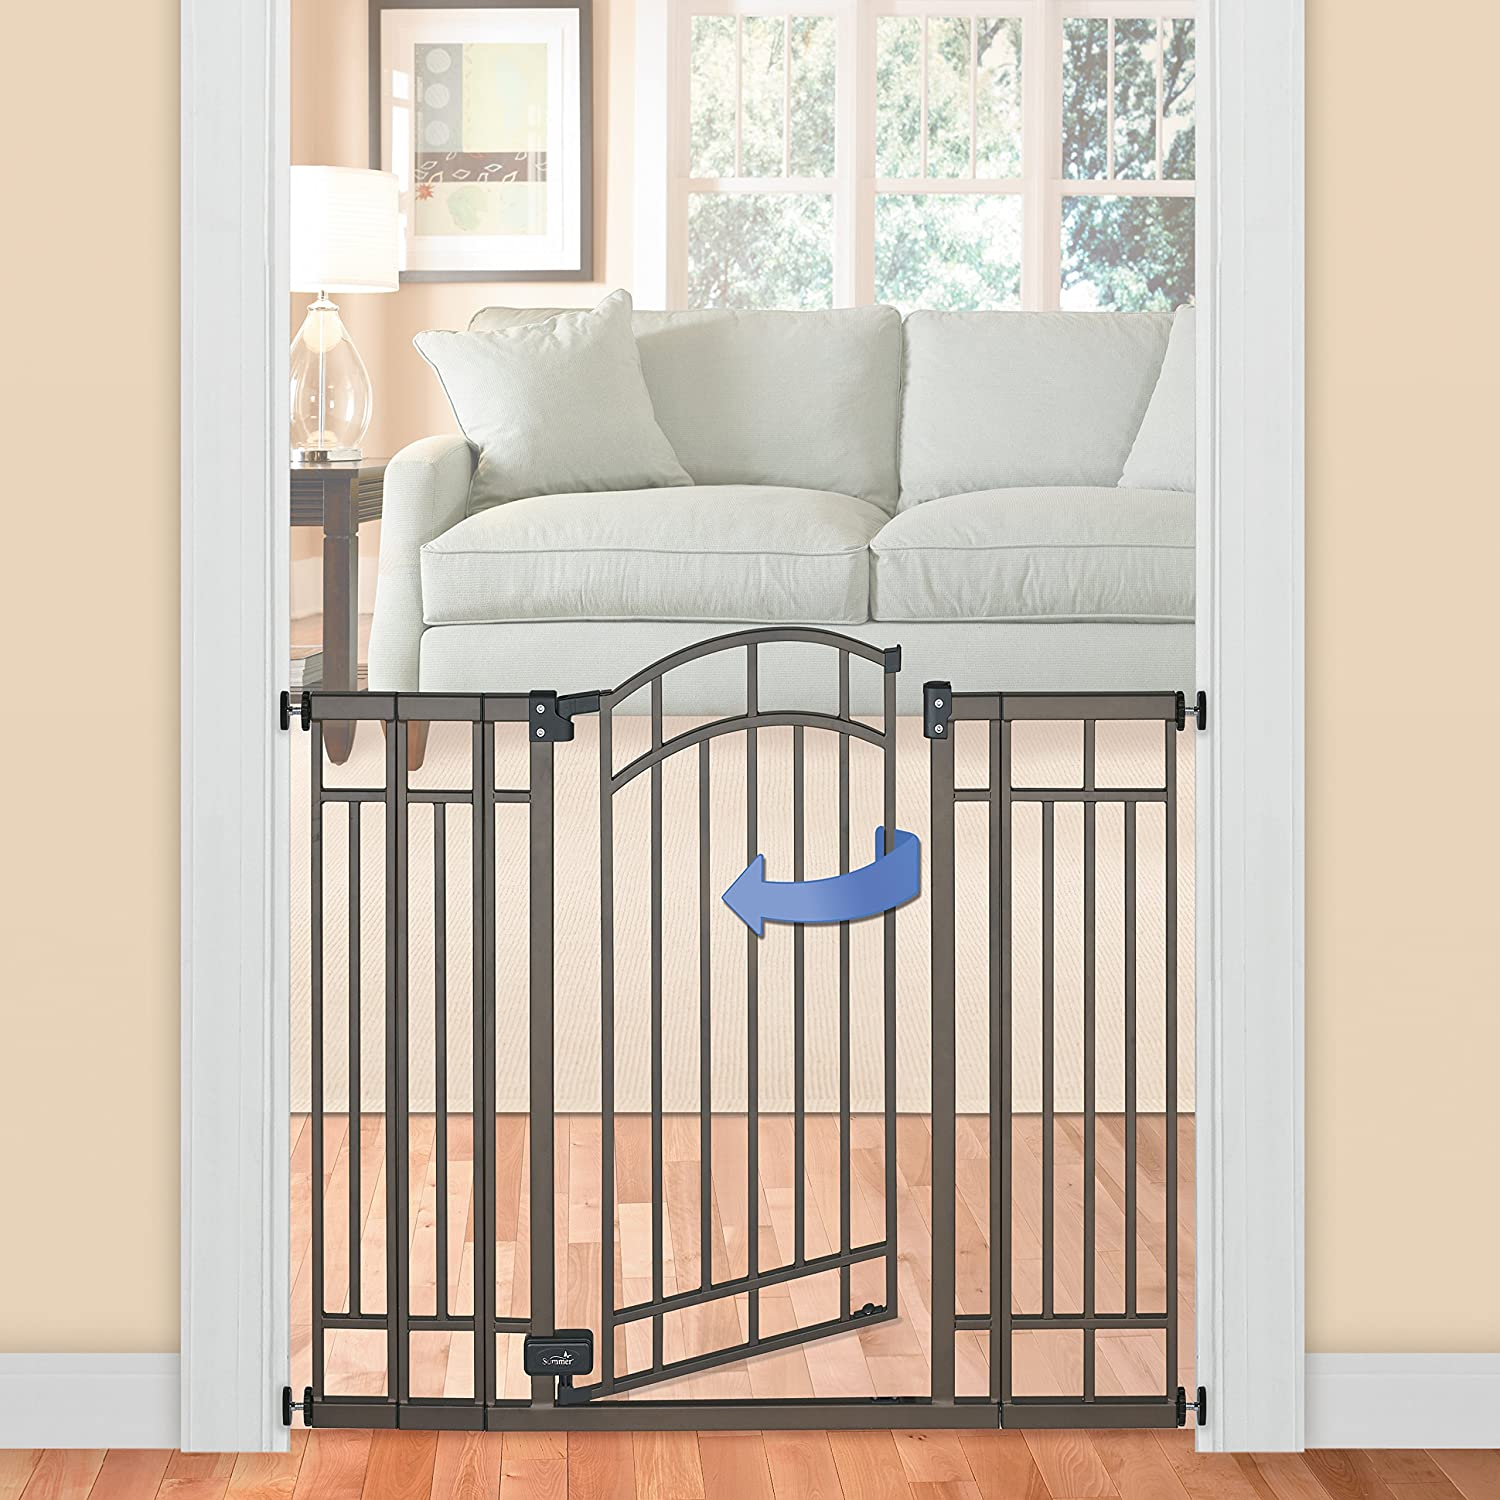 Uncategorized - Best Baby Safety Gates